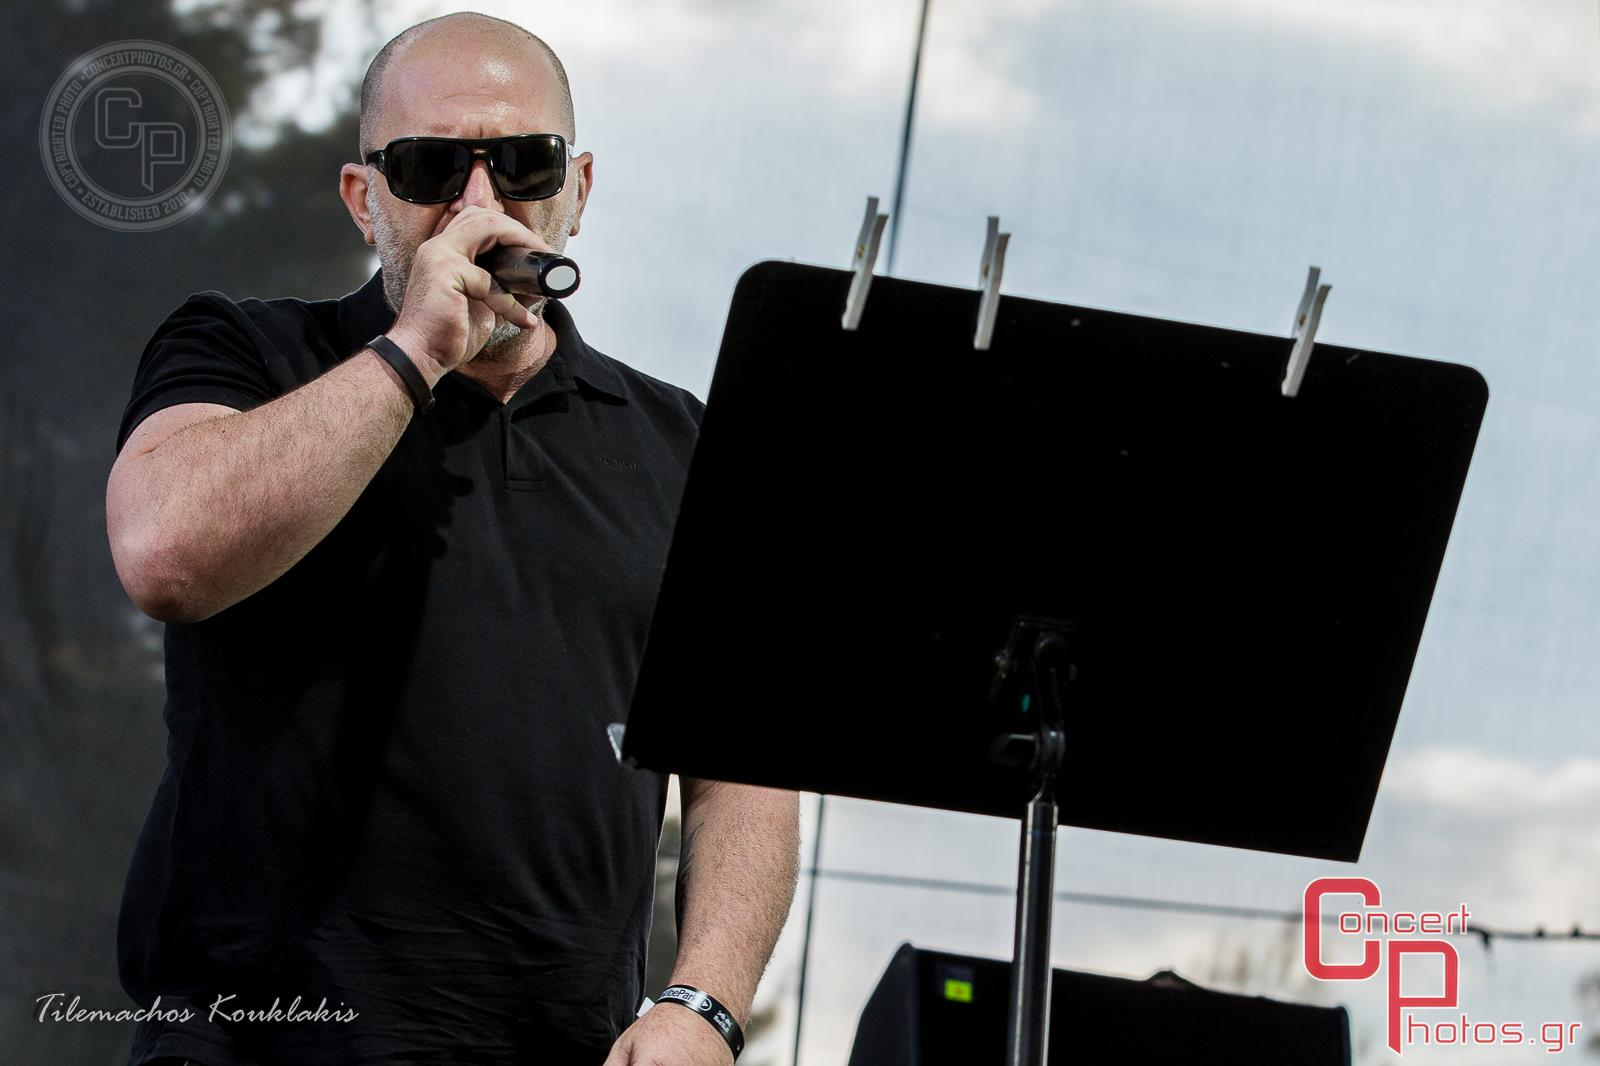 Rockwave 2014-Rockwave 2014 - Day 1 photographer:  - Rockwave-2014-51